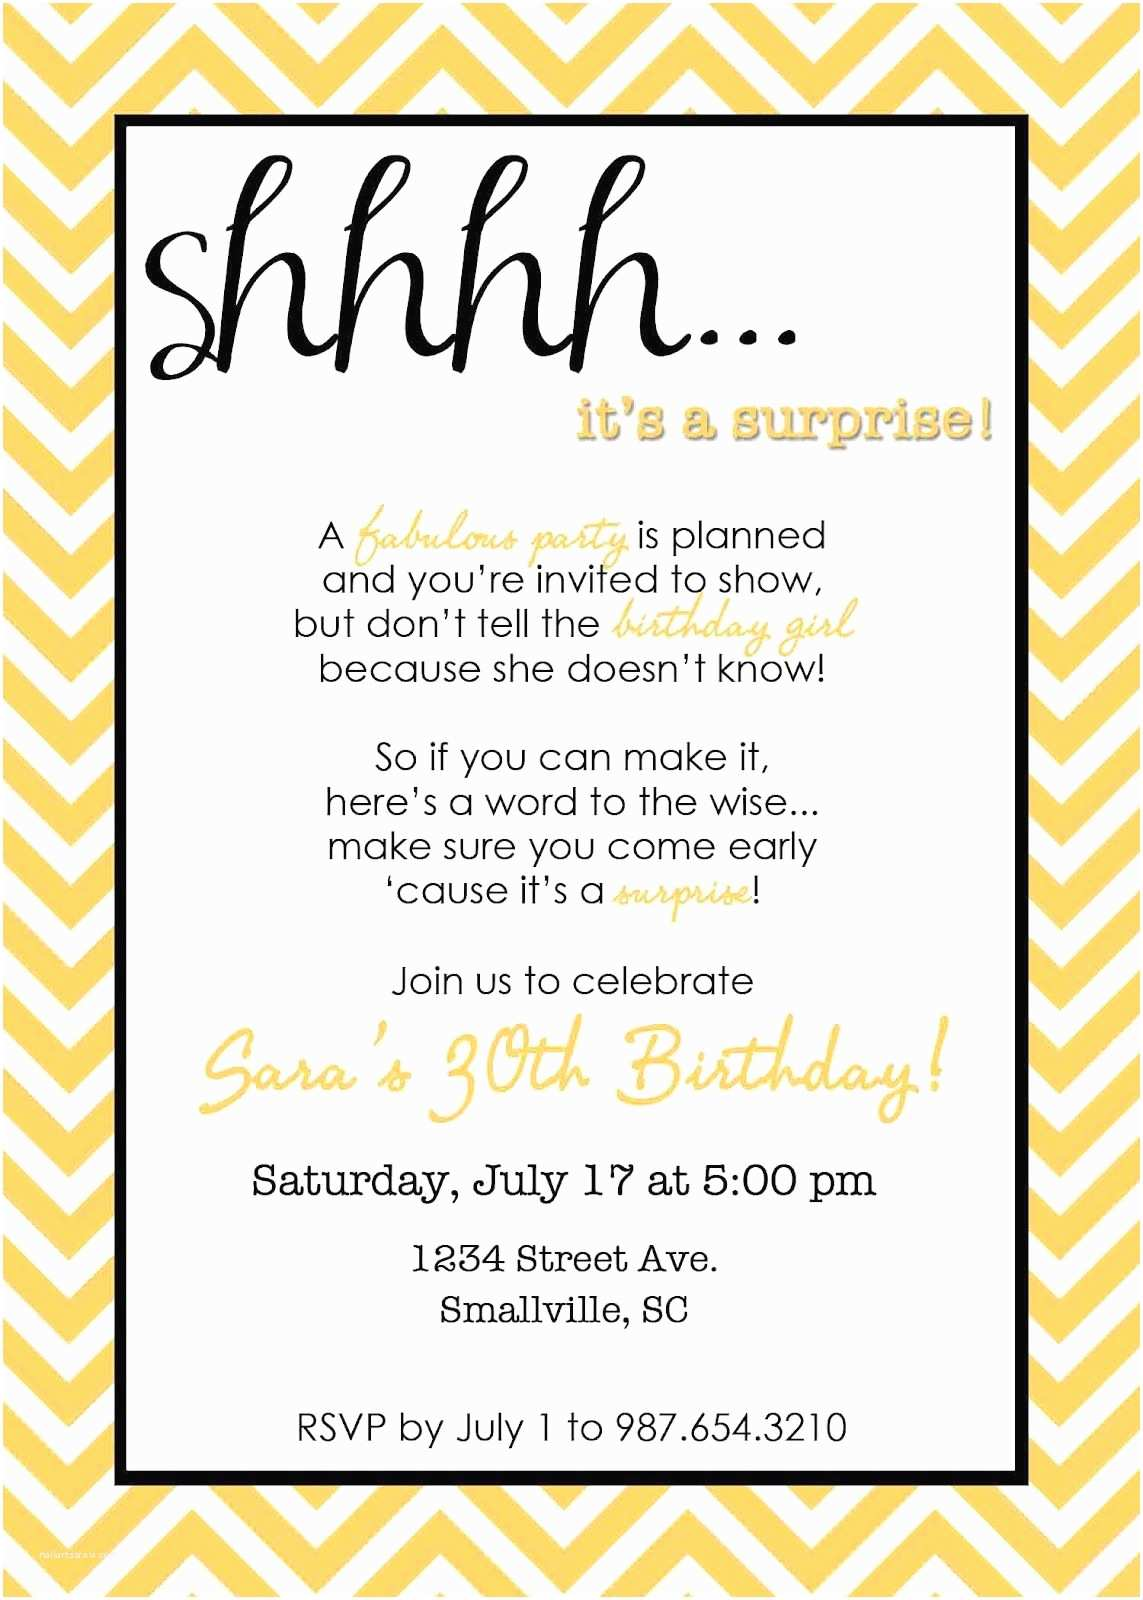 Cool Birthday Invitations Cool Wording for Surprise Birthday Party Invitations Get